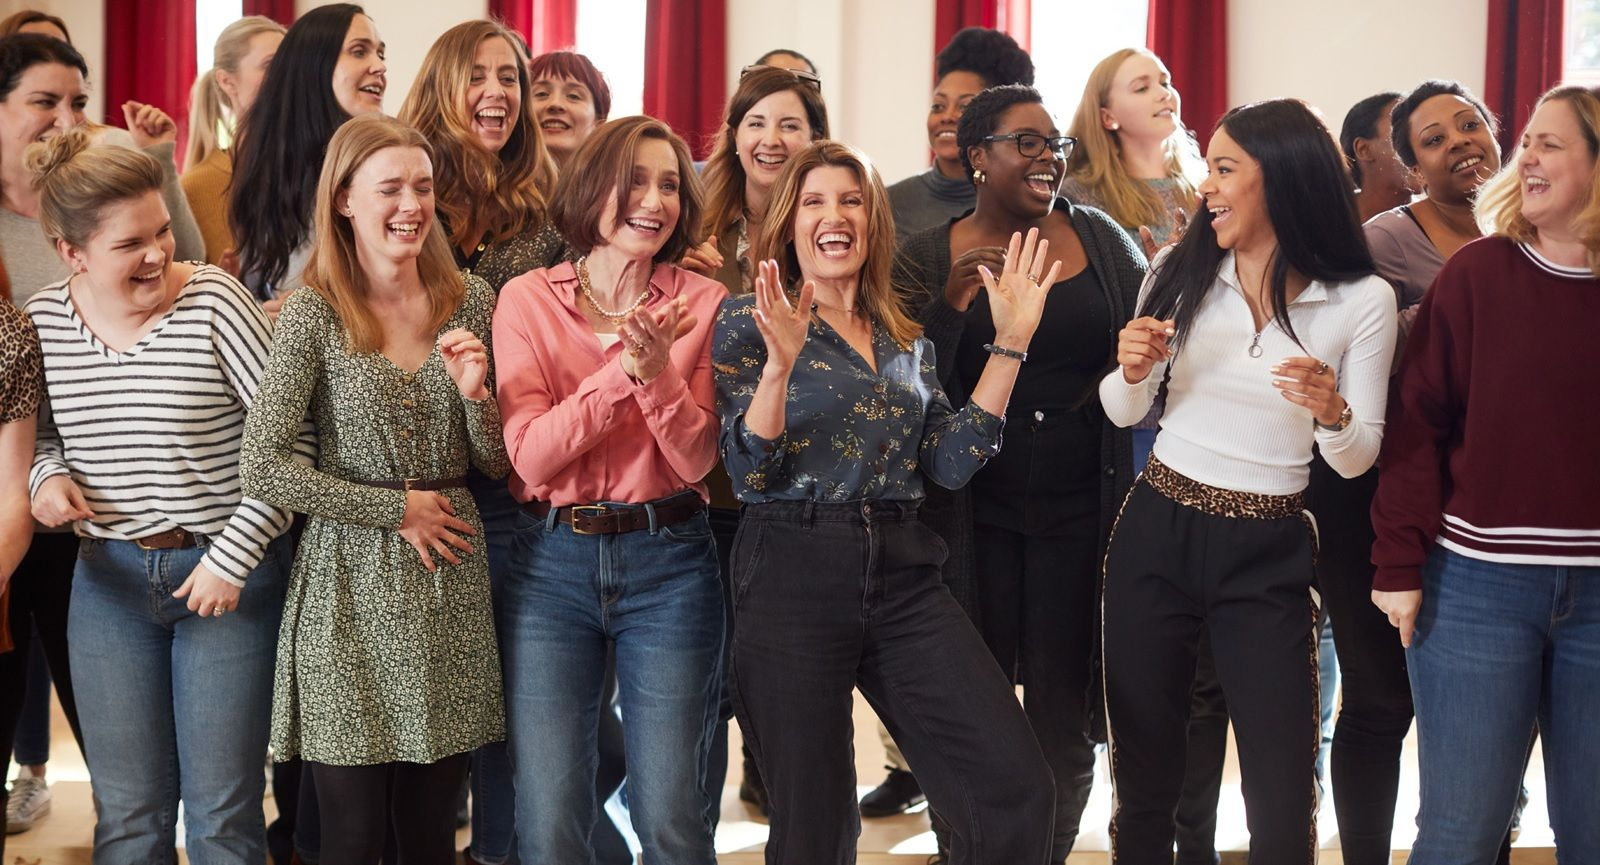 THE SINGING CLUB, le feel-good movie sur le pouvoir du chant